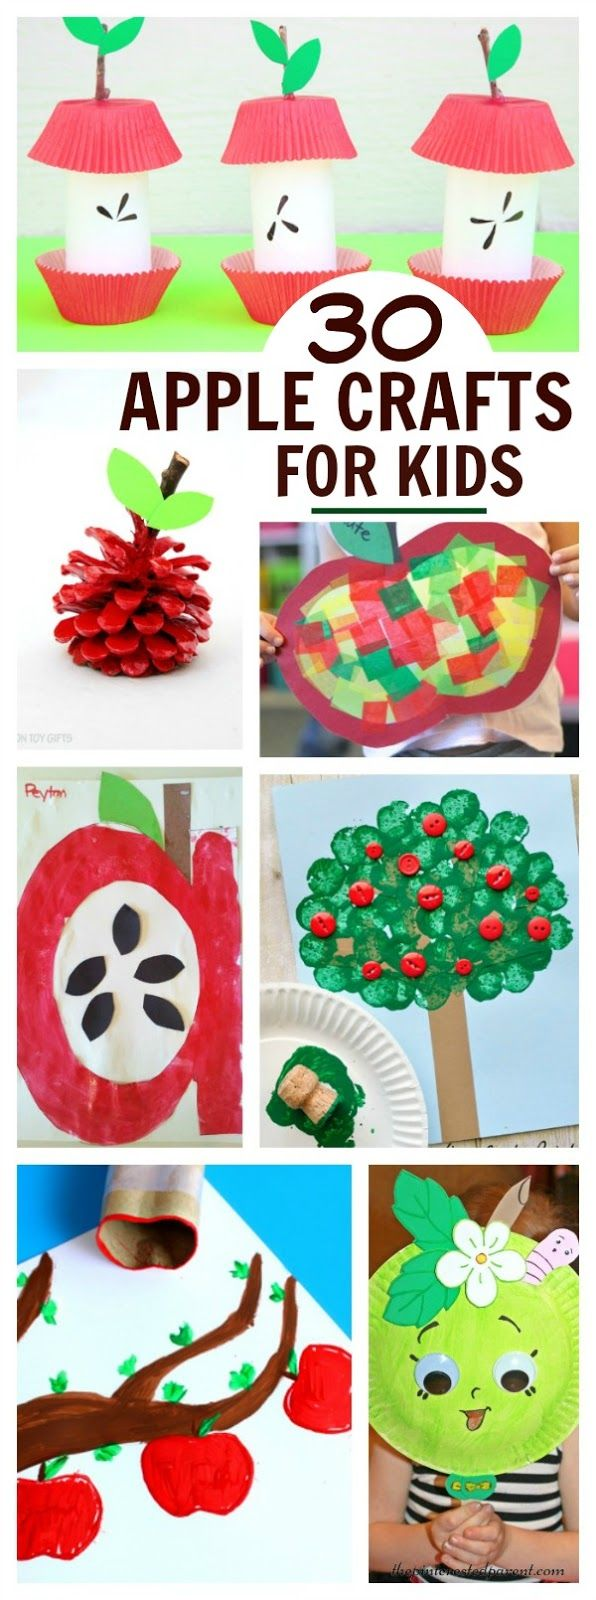 30 APPLE CRAFTS & ACTIVITIES FOR KIDS - I can't wait to try the apple…